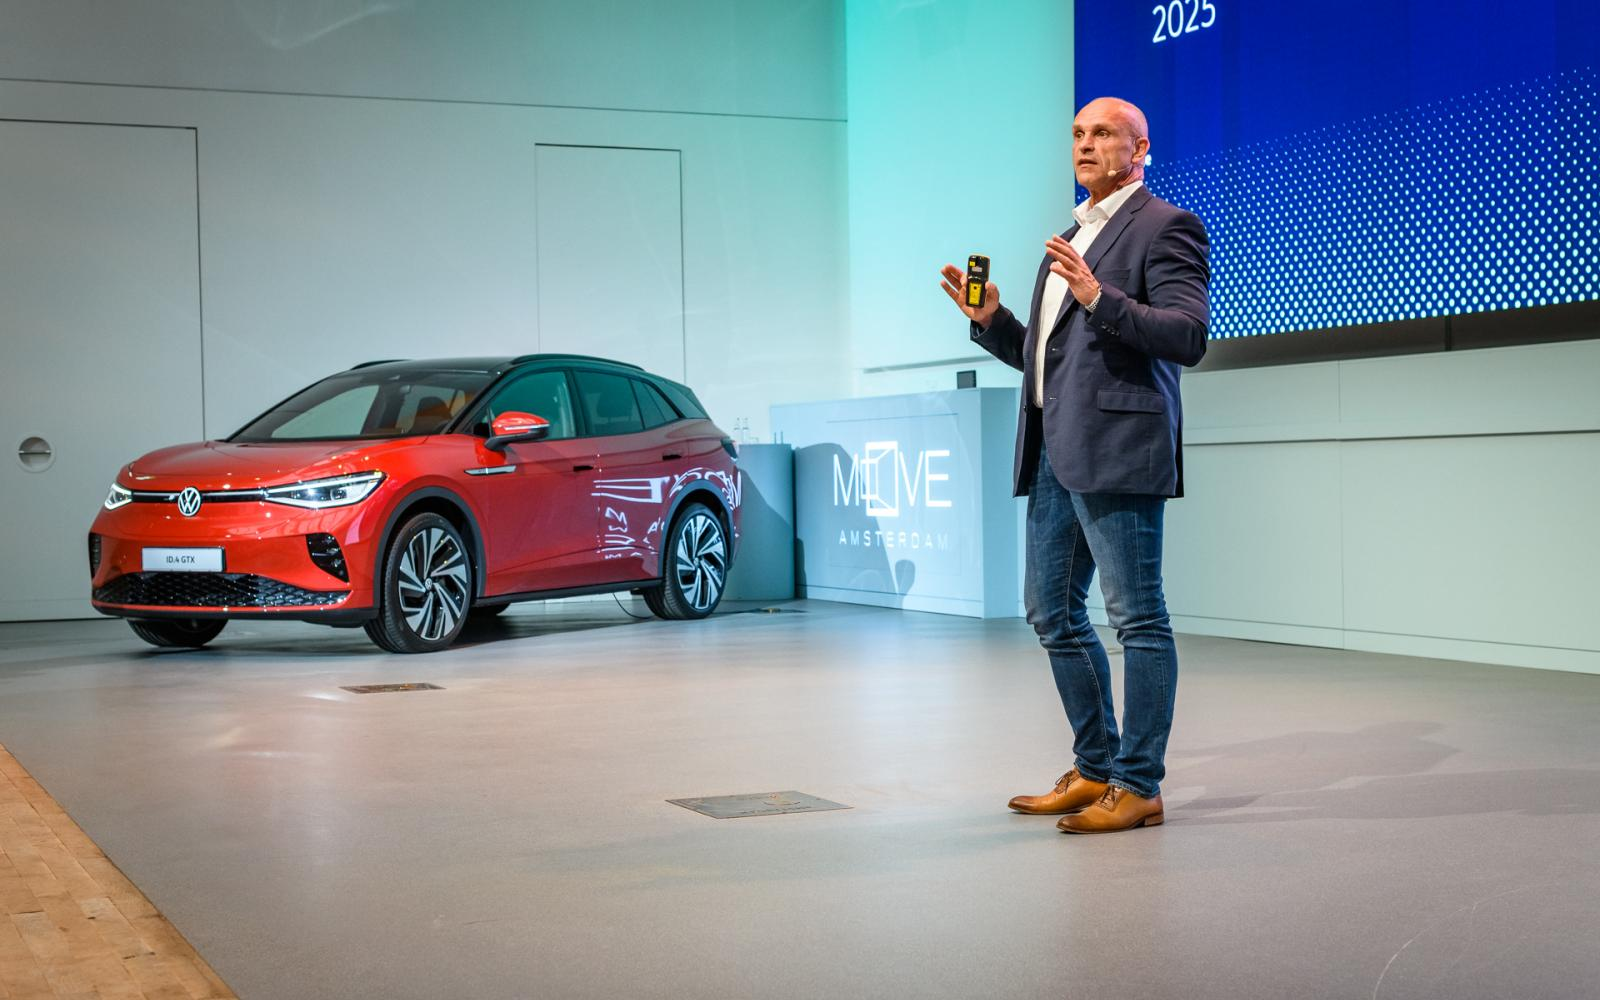 In 2025, the Volkswagen ID.2, with a price below 25,000 euros